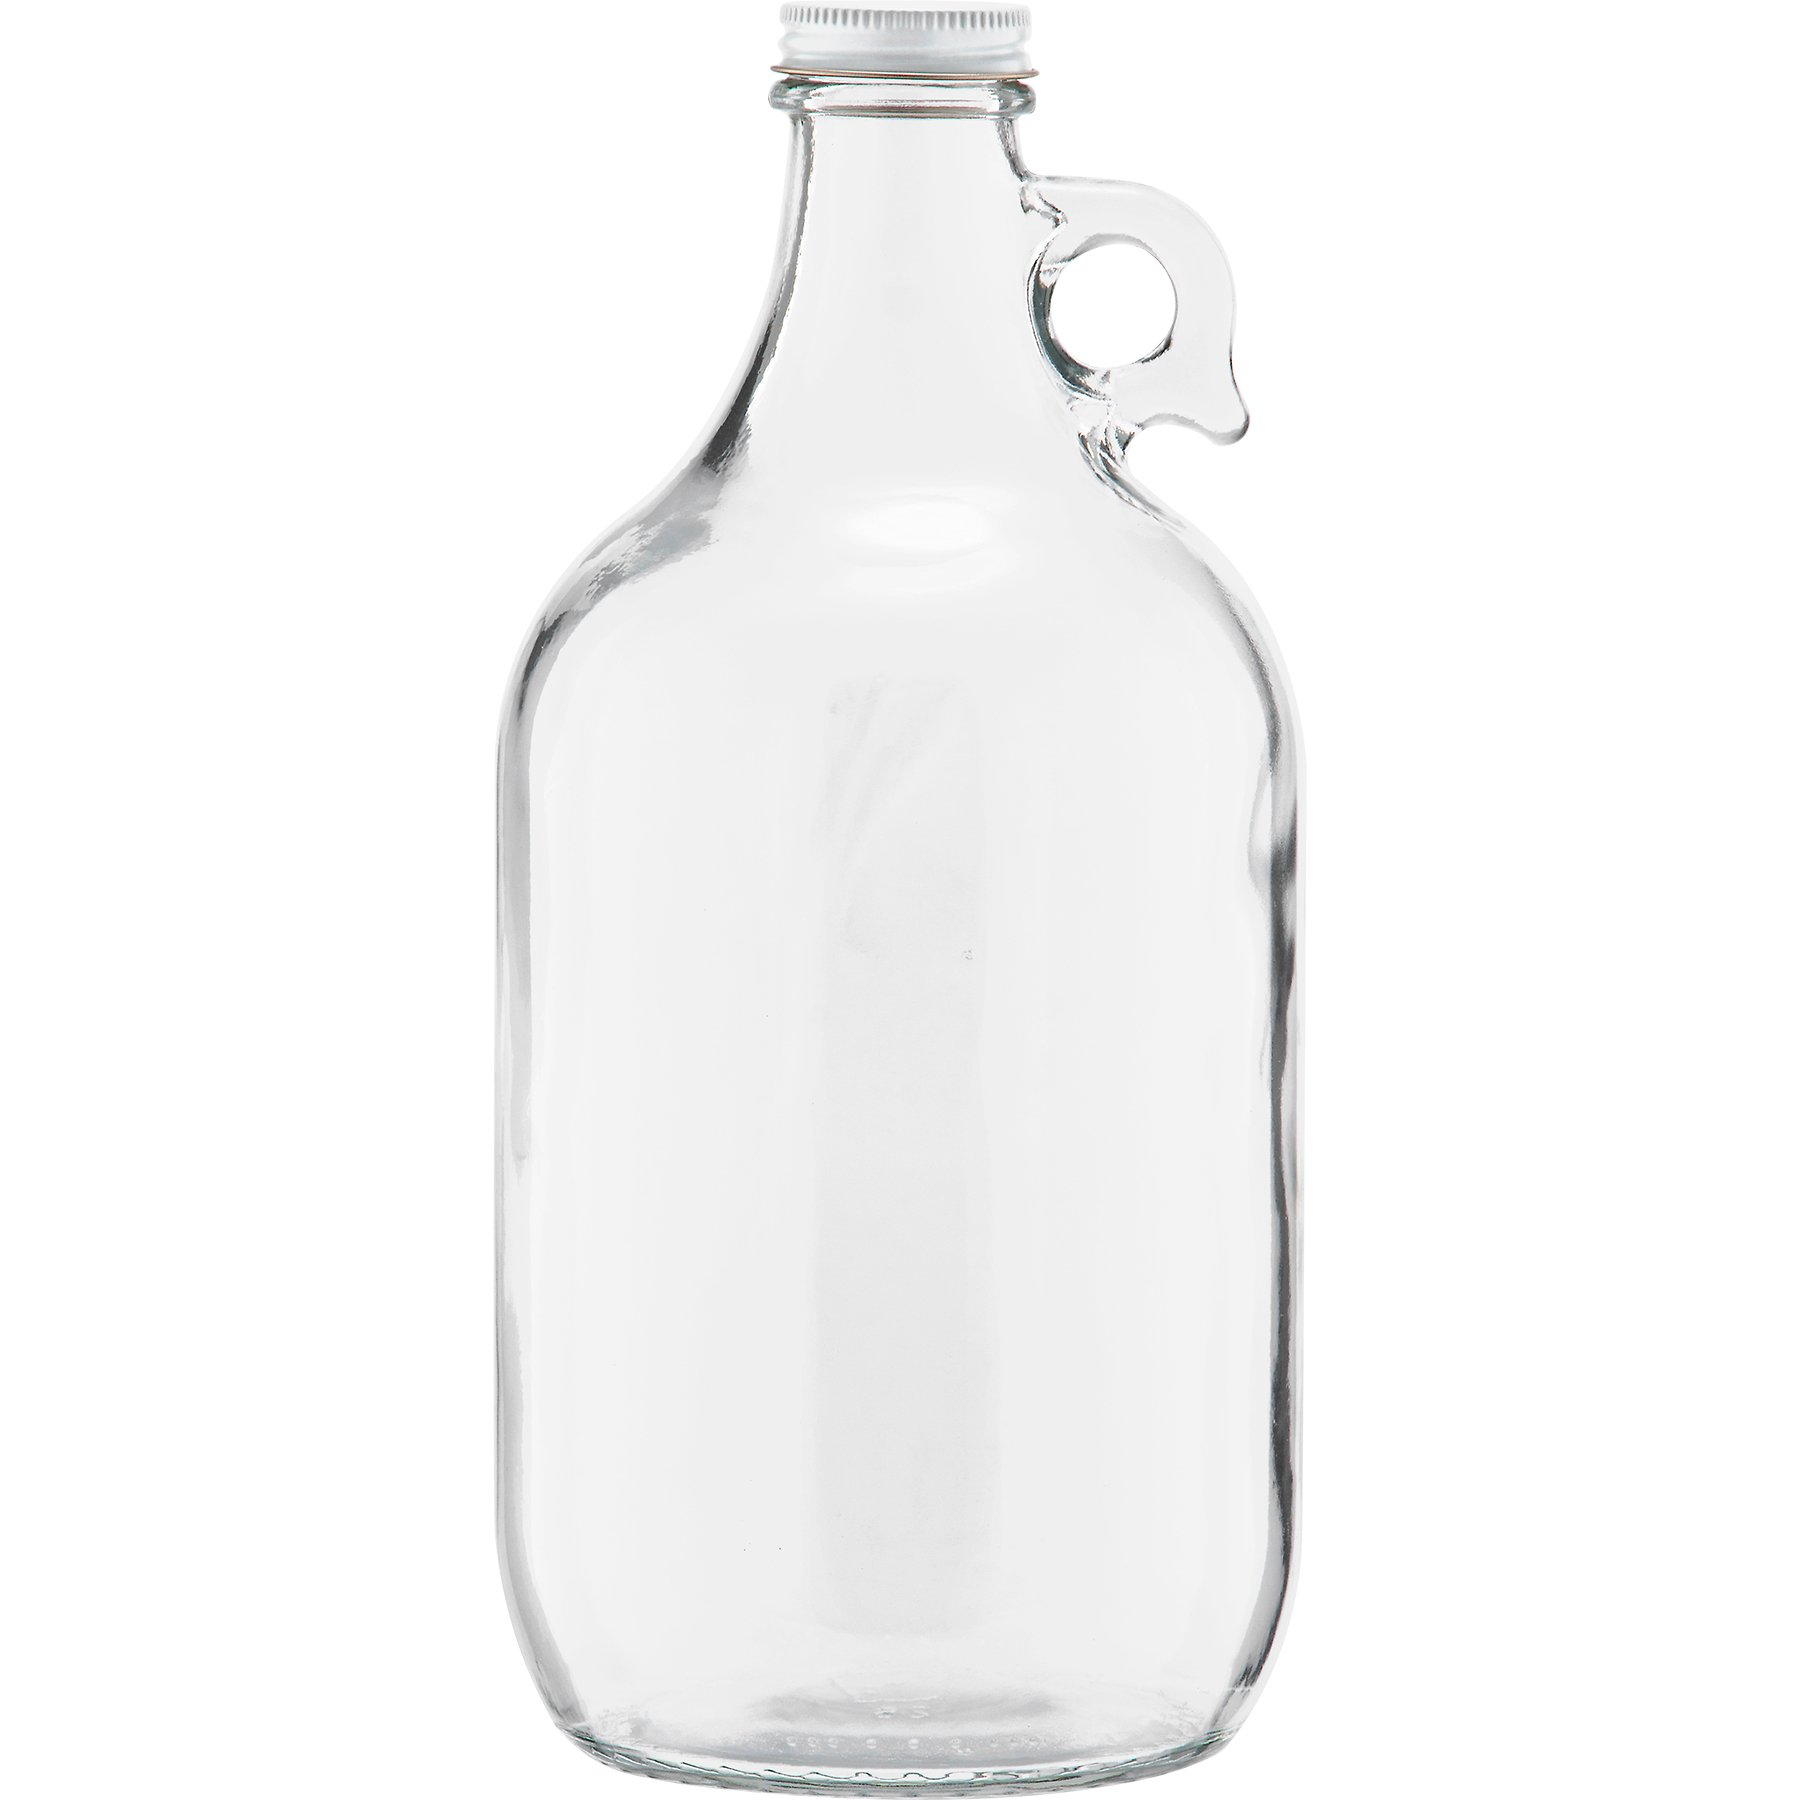 The Cary 30W64GW Glass Beer Growlers, 1/2 gal, 4.9'' ID, Glass, Clear (Pack of 6)